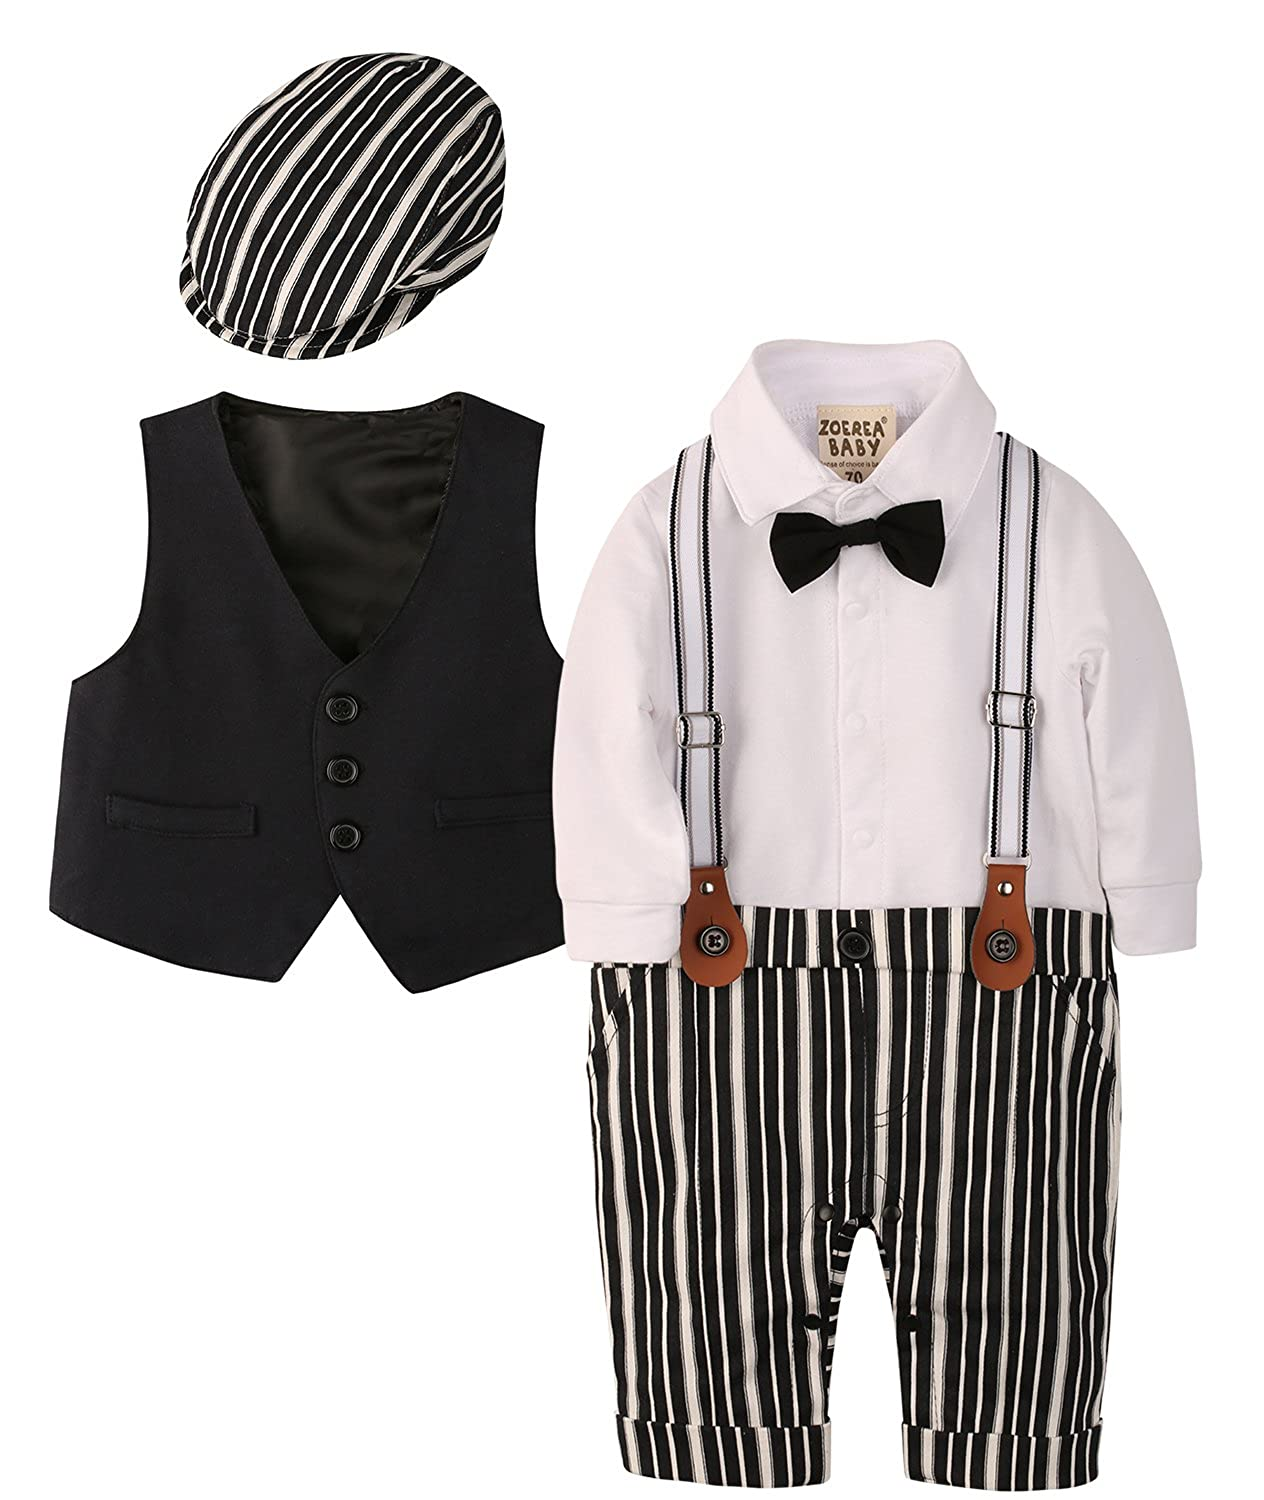 No Color 3pcs Long Sleeves Gentleman ZOEREA Baby Boy Outfits Set Size No Size